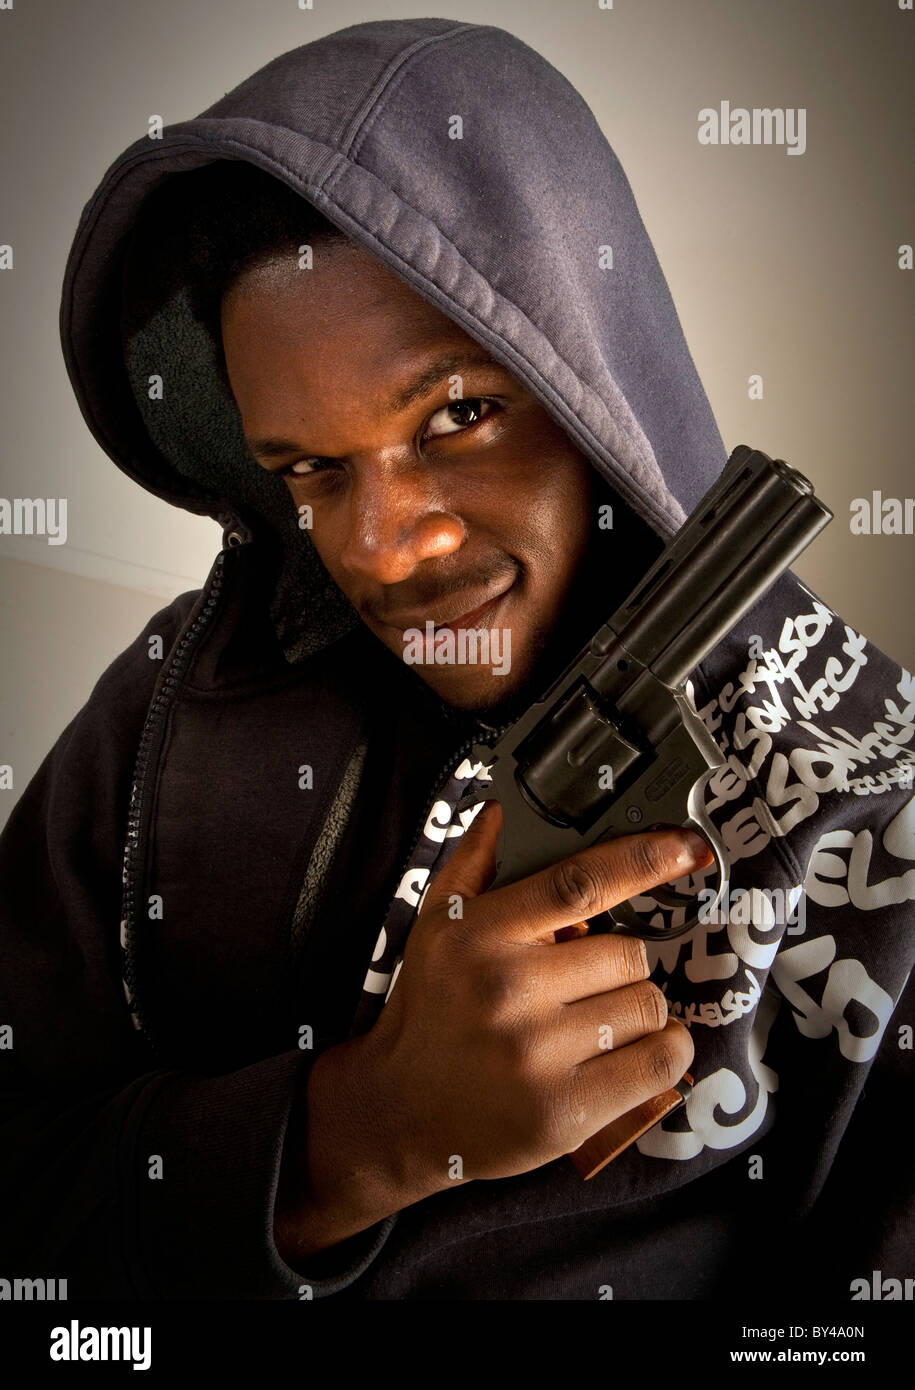 Young black male model posing with a gun